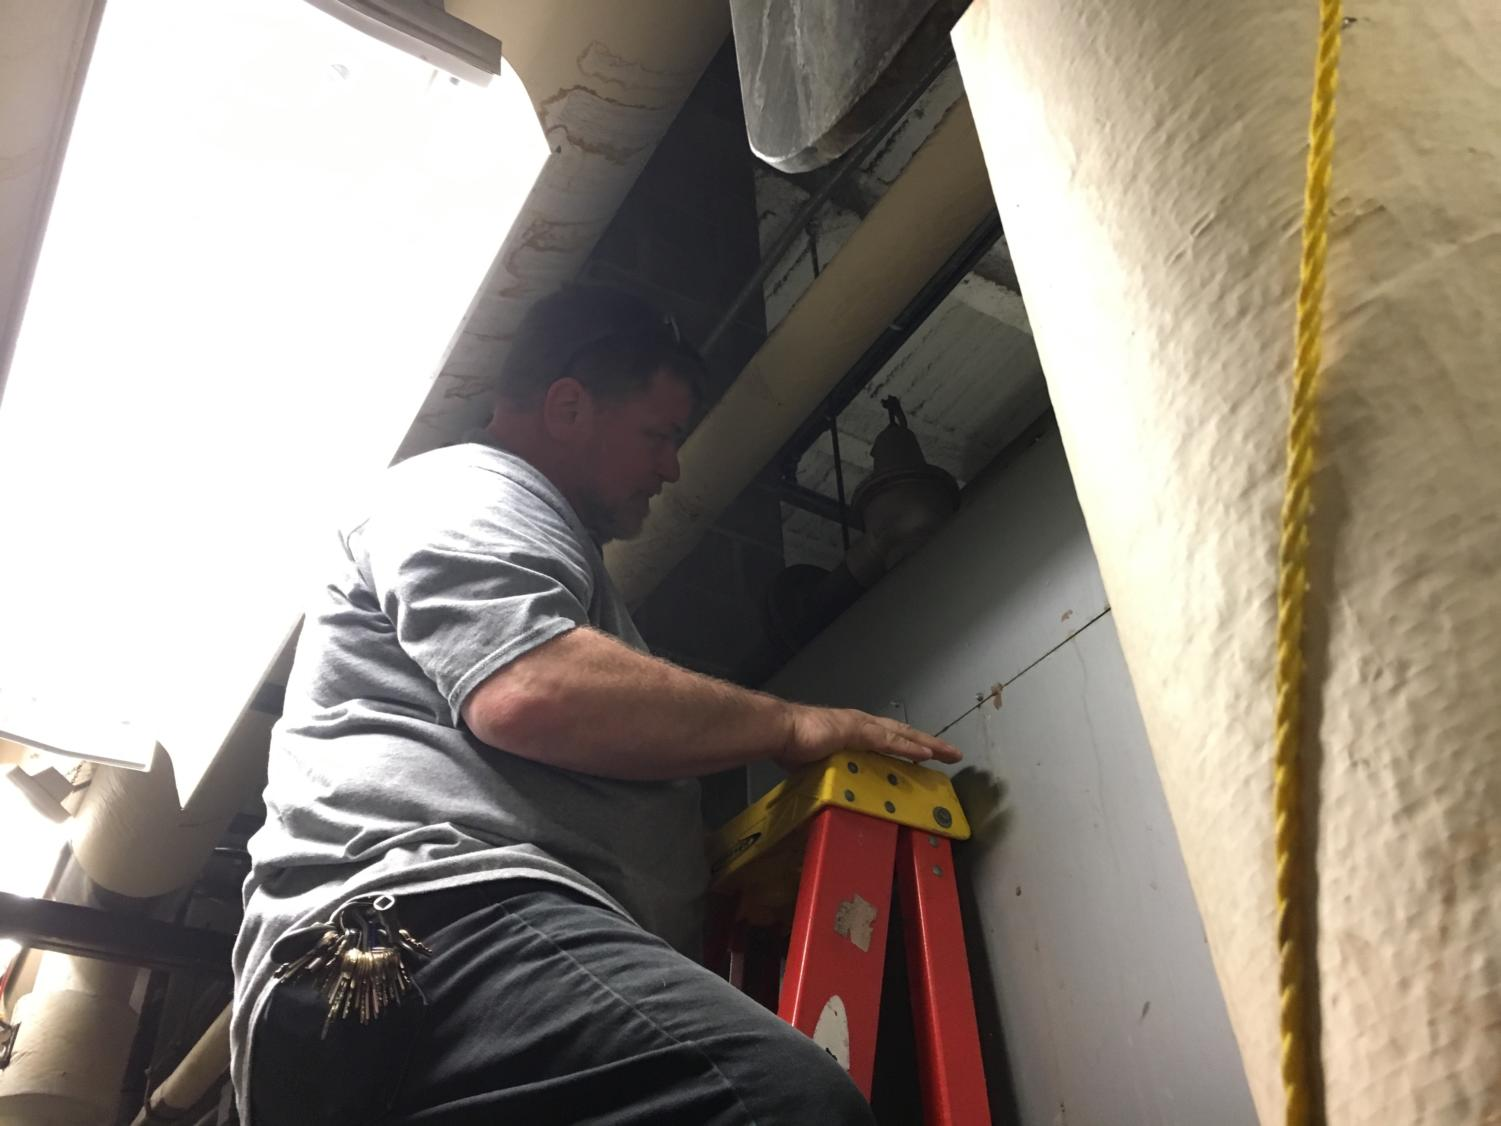 Maintenance worker Fred Napier fixes a busted spring in a boiler relief valve before it can cause further problems for the school. Napier and the other maintenance workers have a variety of things that they do every day to ensure that CHS runs as smoothly as possible.